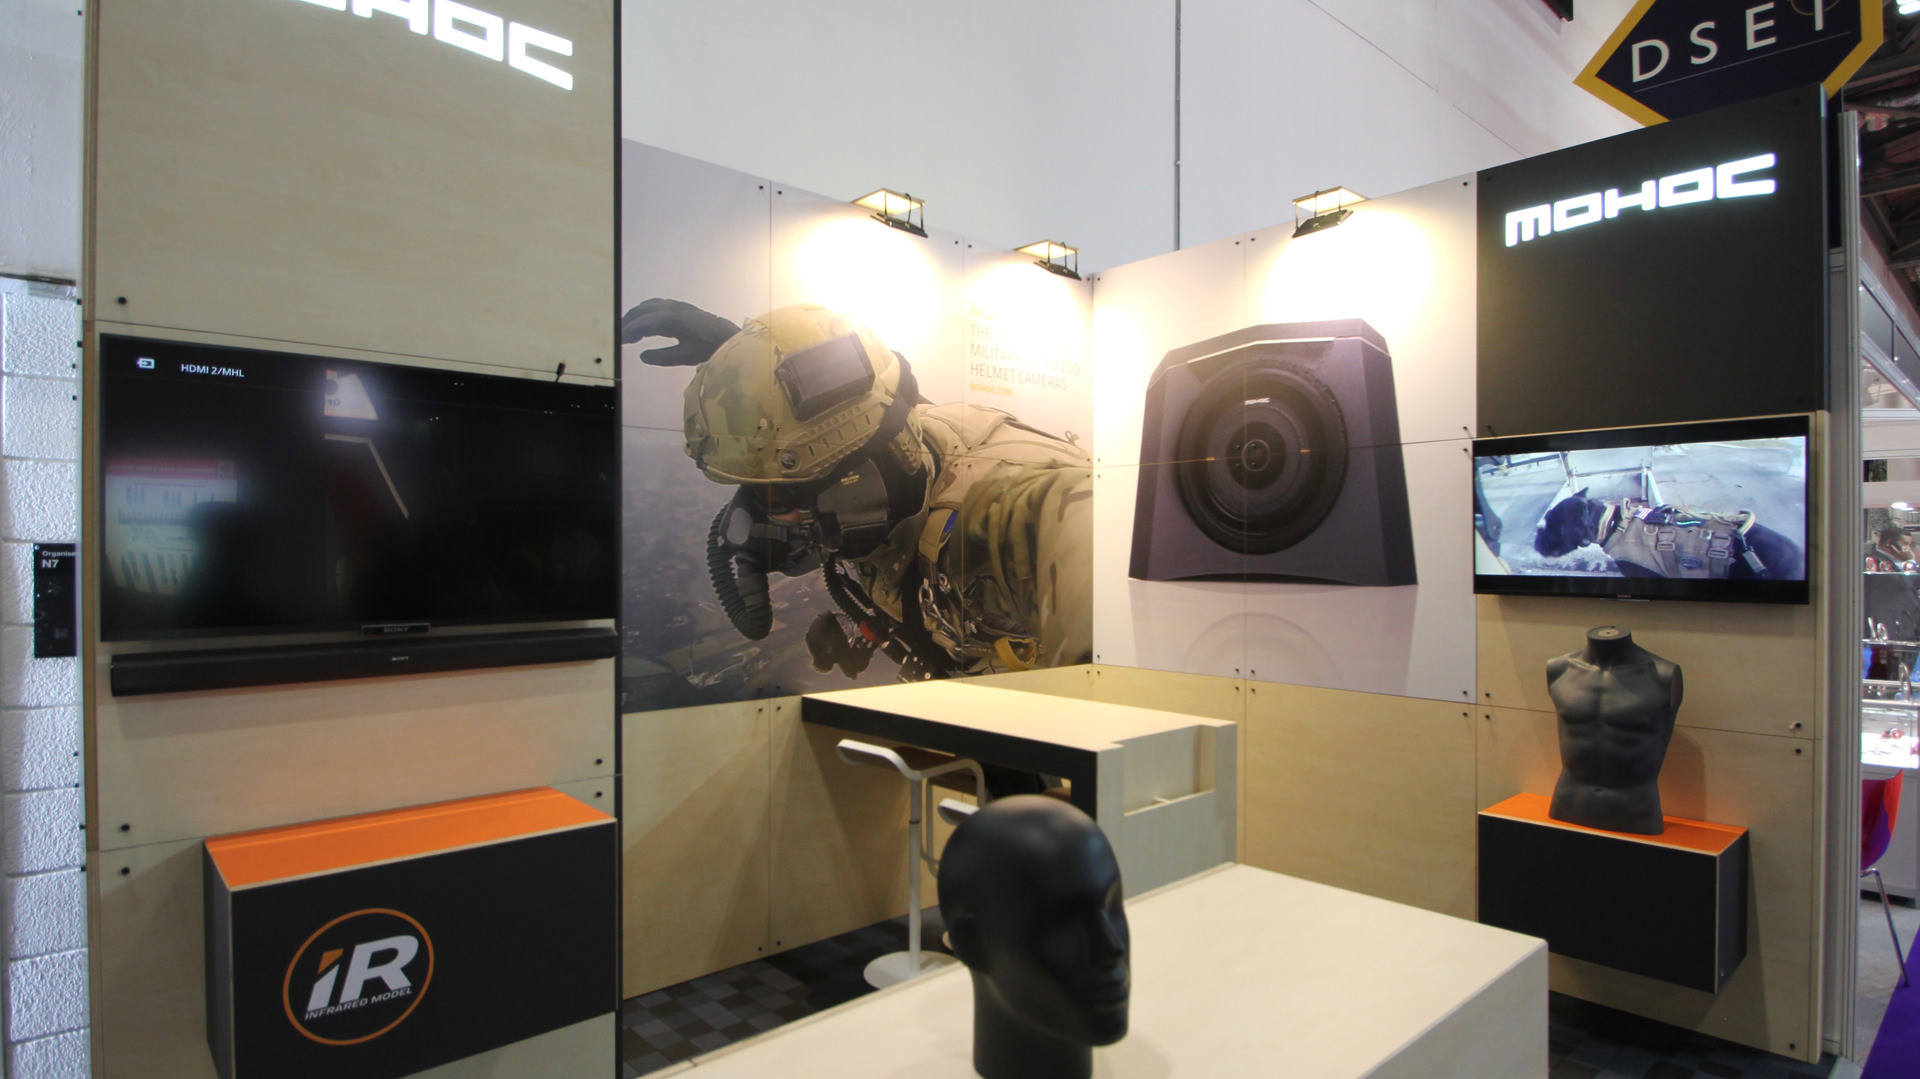 sustainable_modular_exhibition_stand_05.jpg